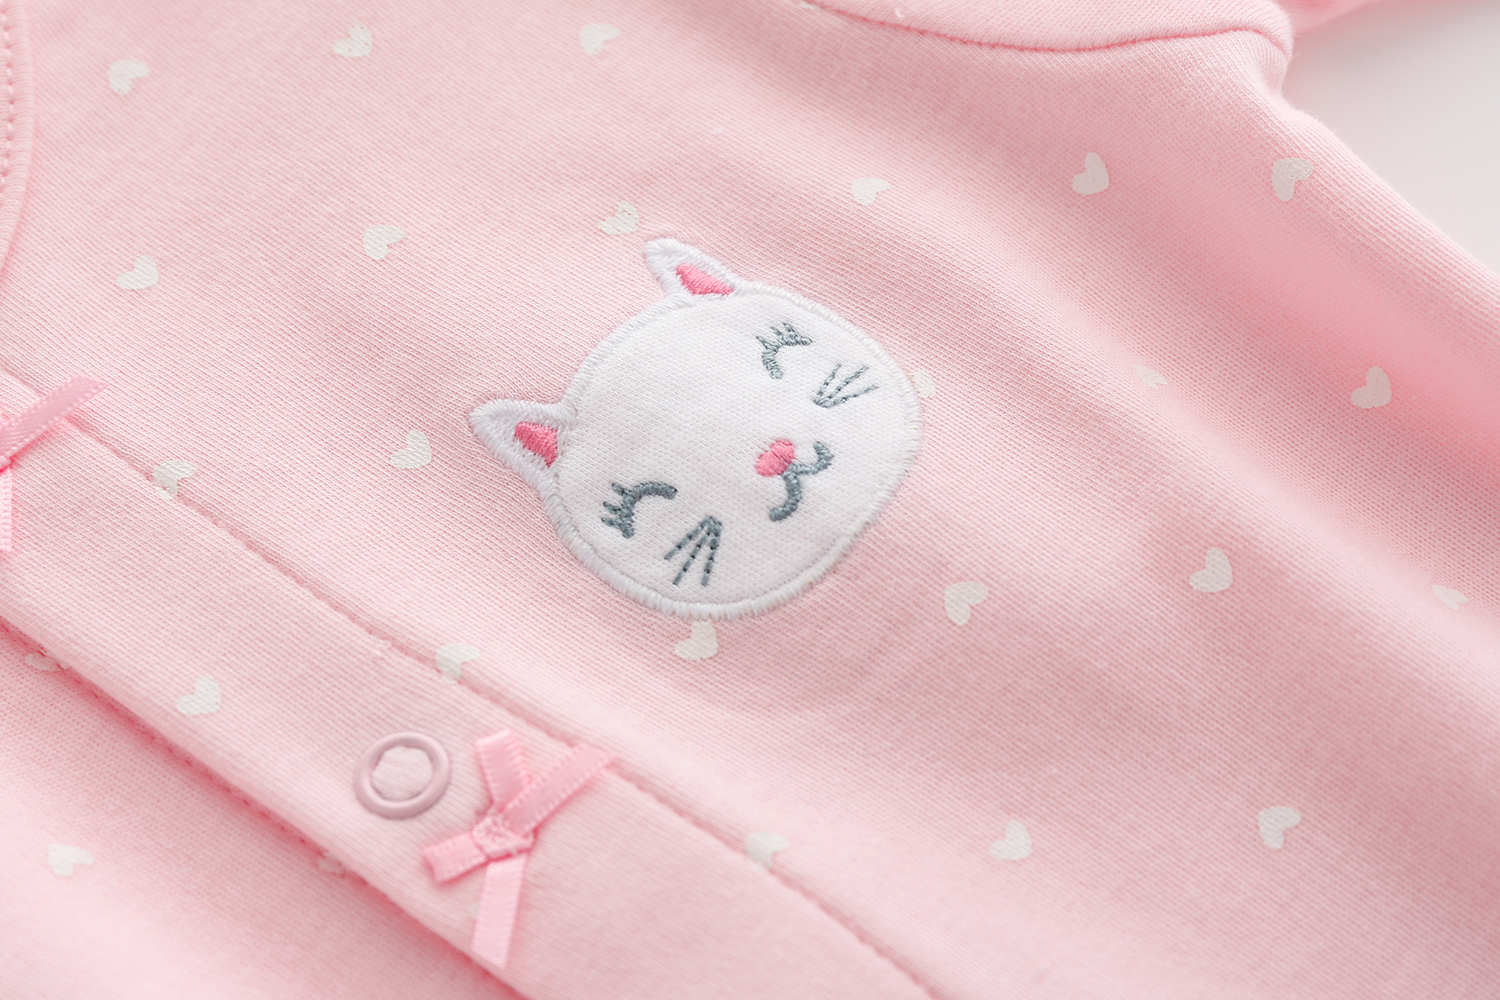 HTB1LBgzDWSWBuNjSsrbq6y0mVXay Newborn baby pajamas unicorn cotton romper boys clothes overalls romper infants bebes jumpsuit premature infant baby clothes